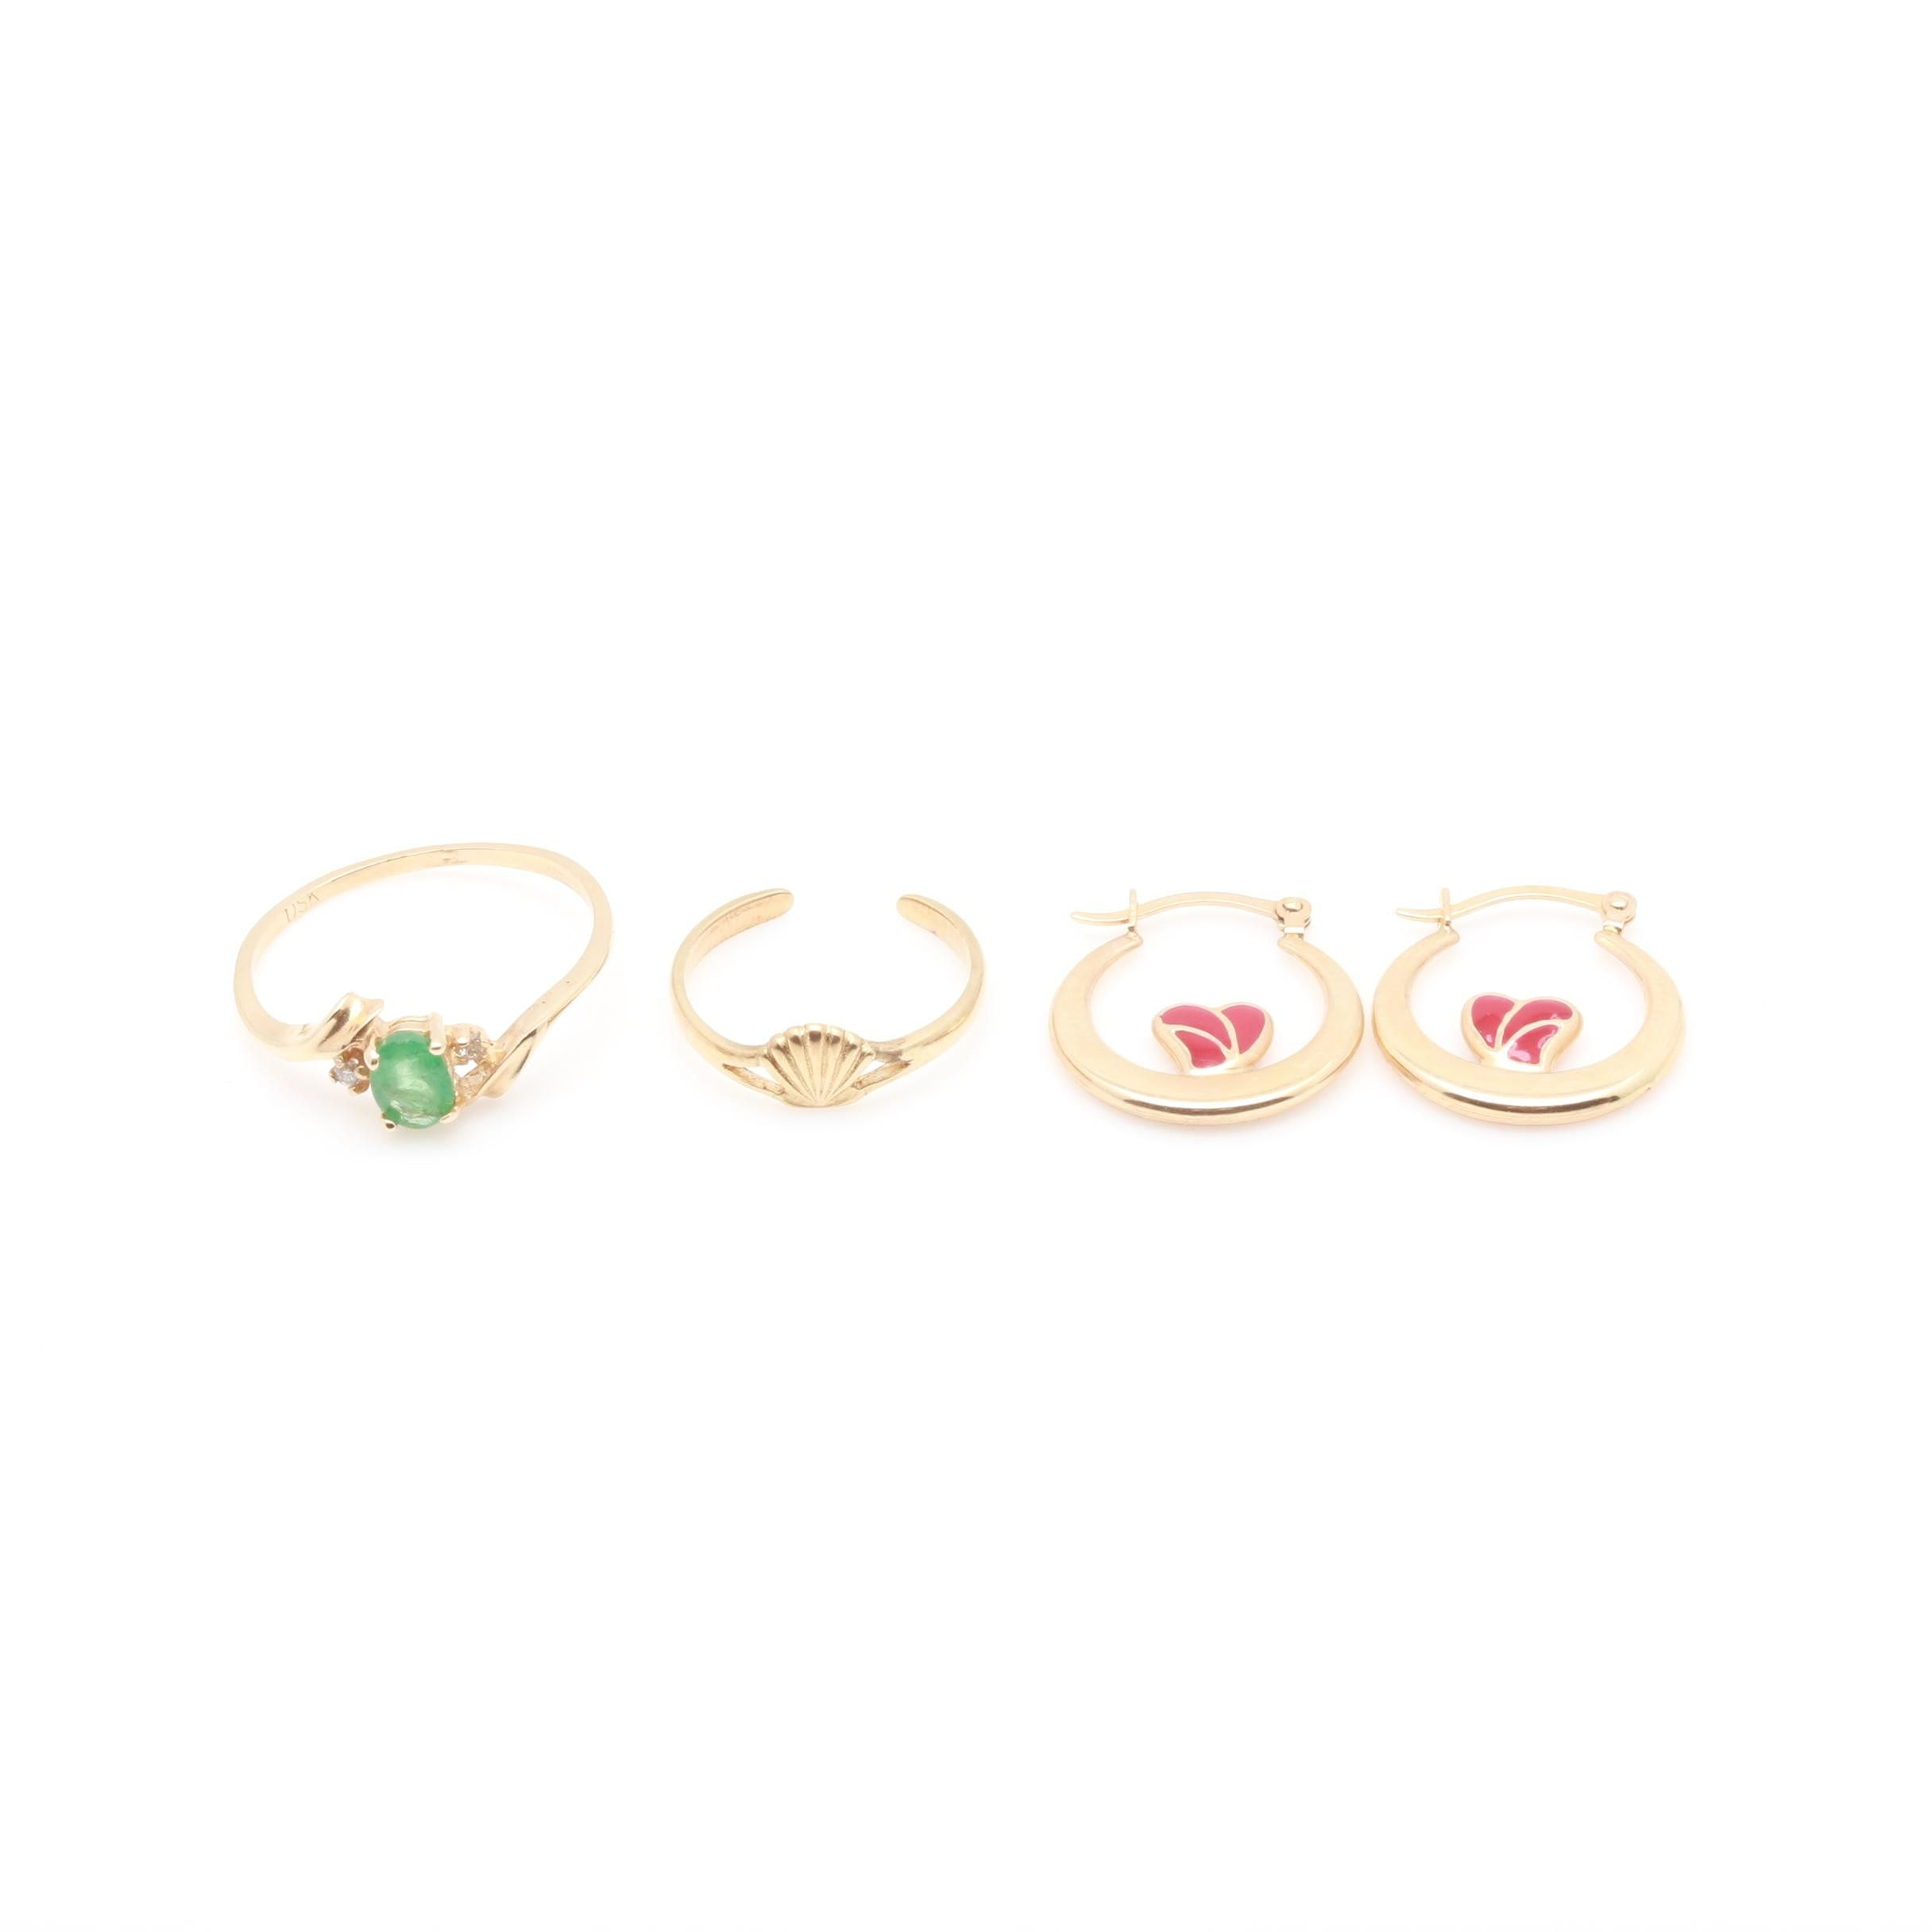 14K Yellow Gold Emerald and Diamond Ring, Earring, and Toe Ring Selection